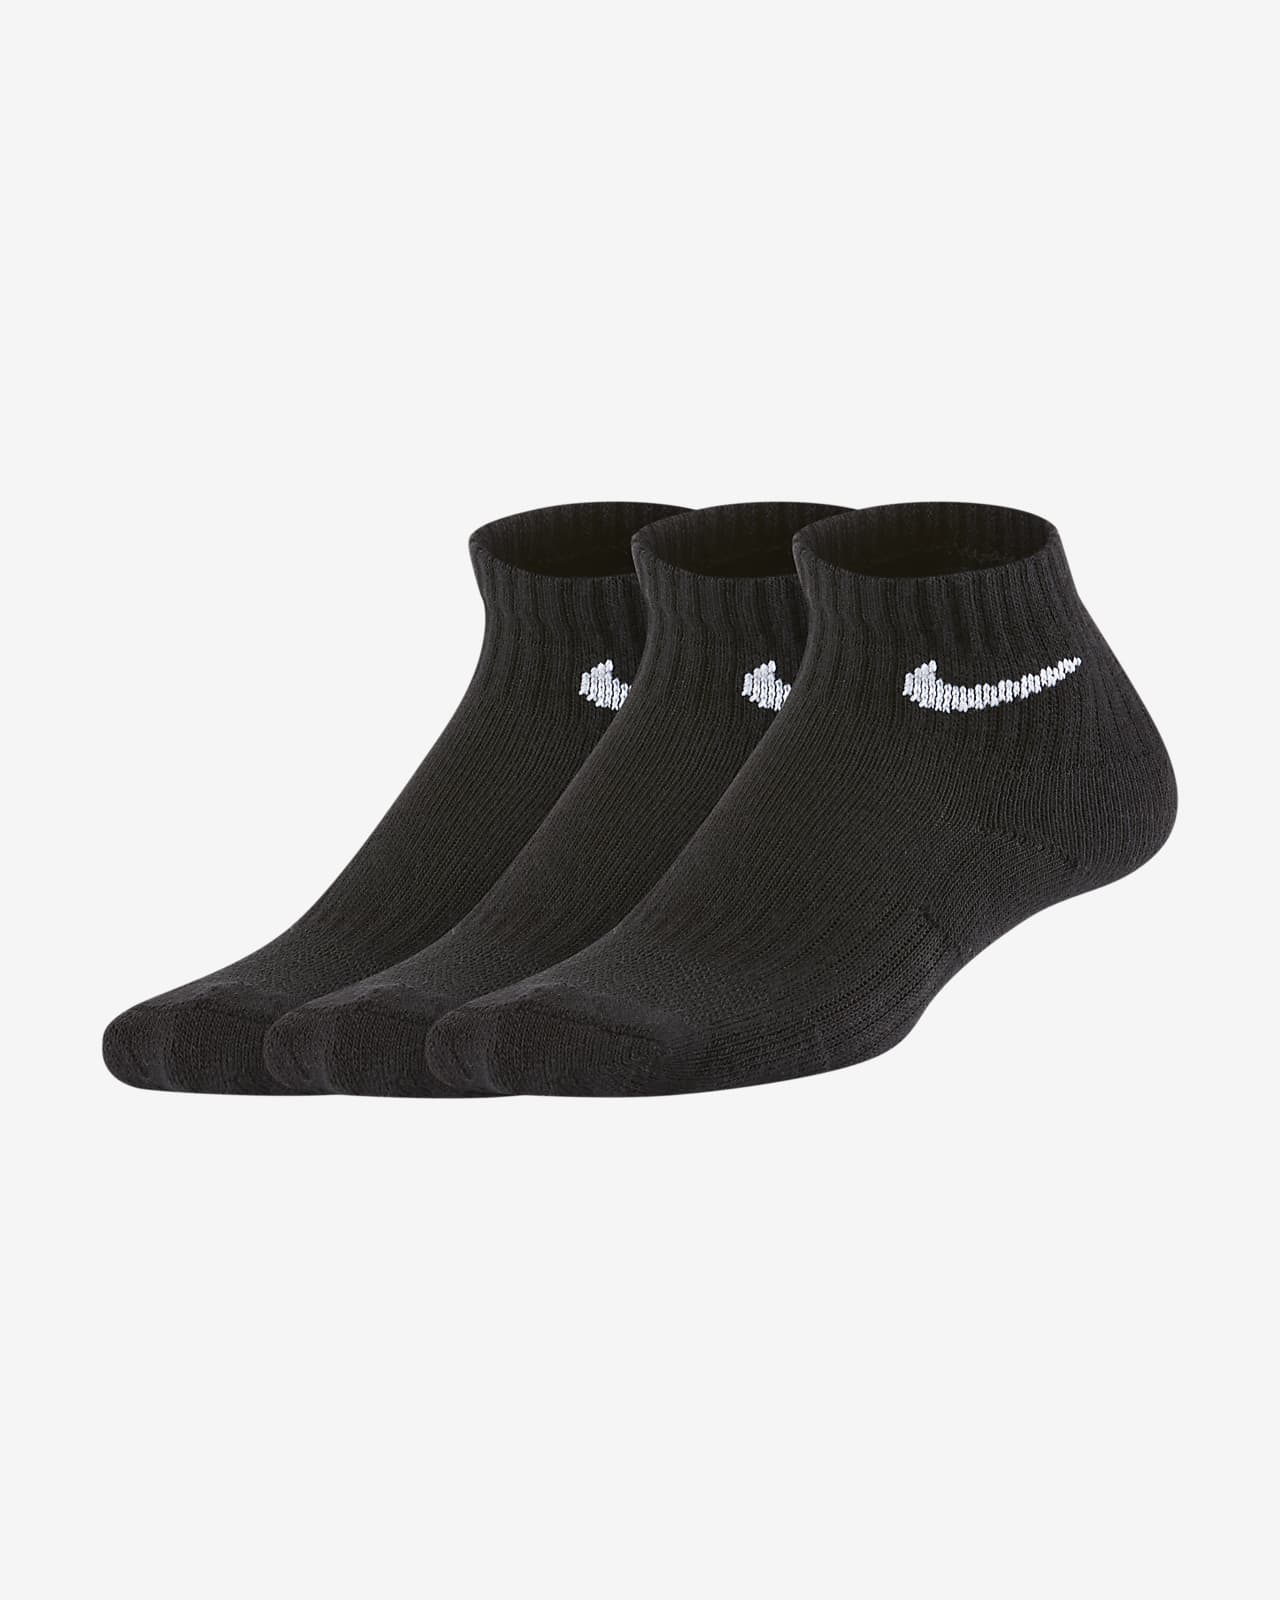 Nike Everyday Younger Kids' Cushioned Ankle Socks (3 Pairs)